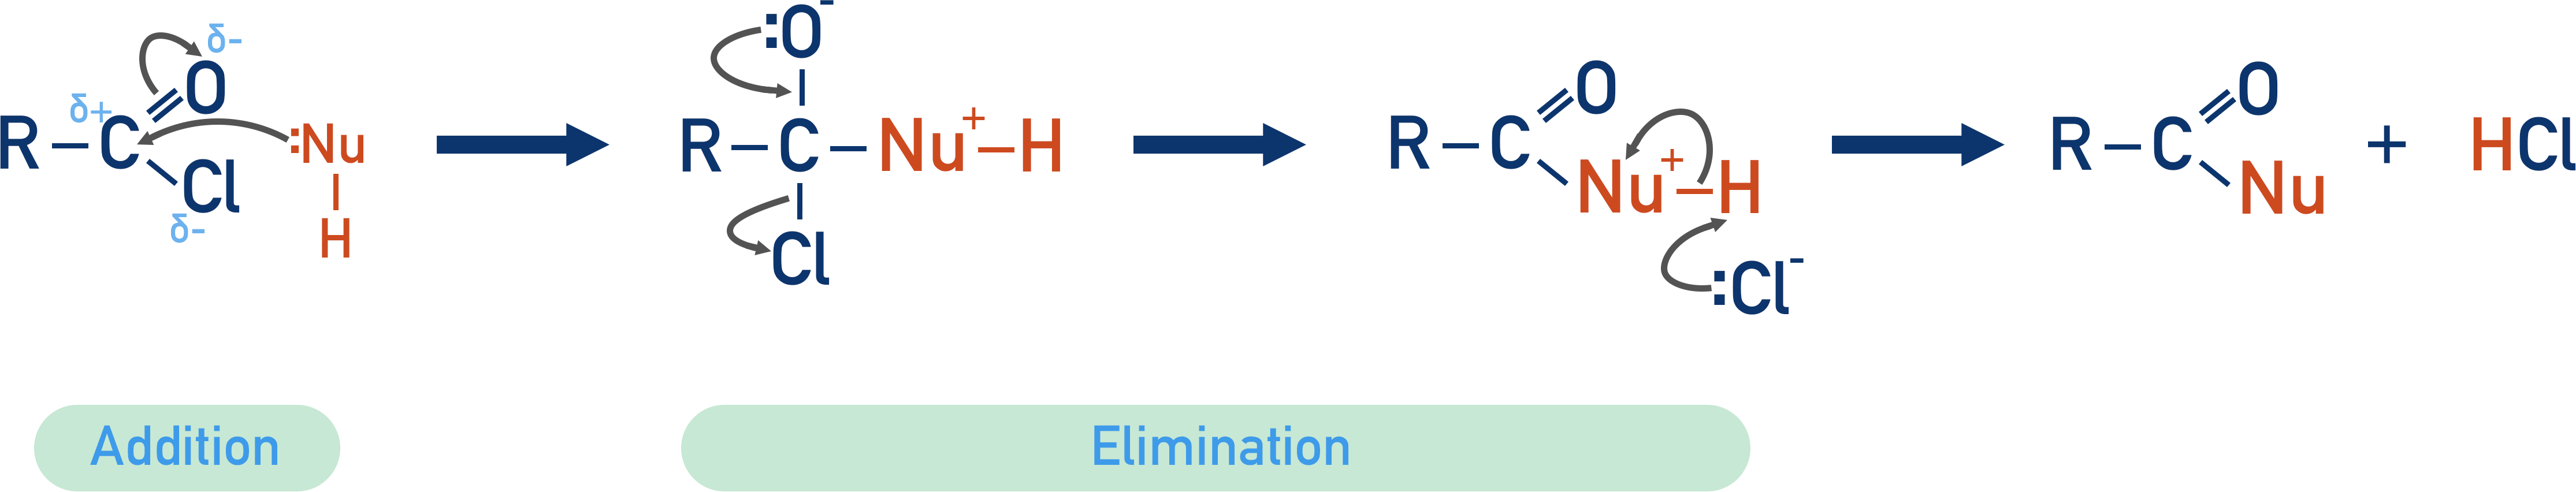 nucleophilic addition-elimination reaction of acyl chlorides mechanism